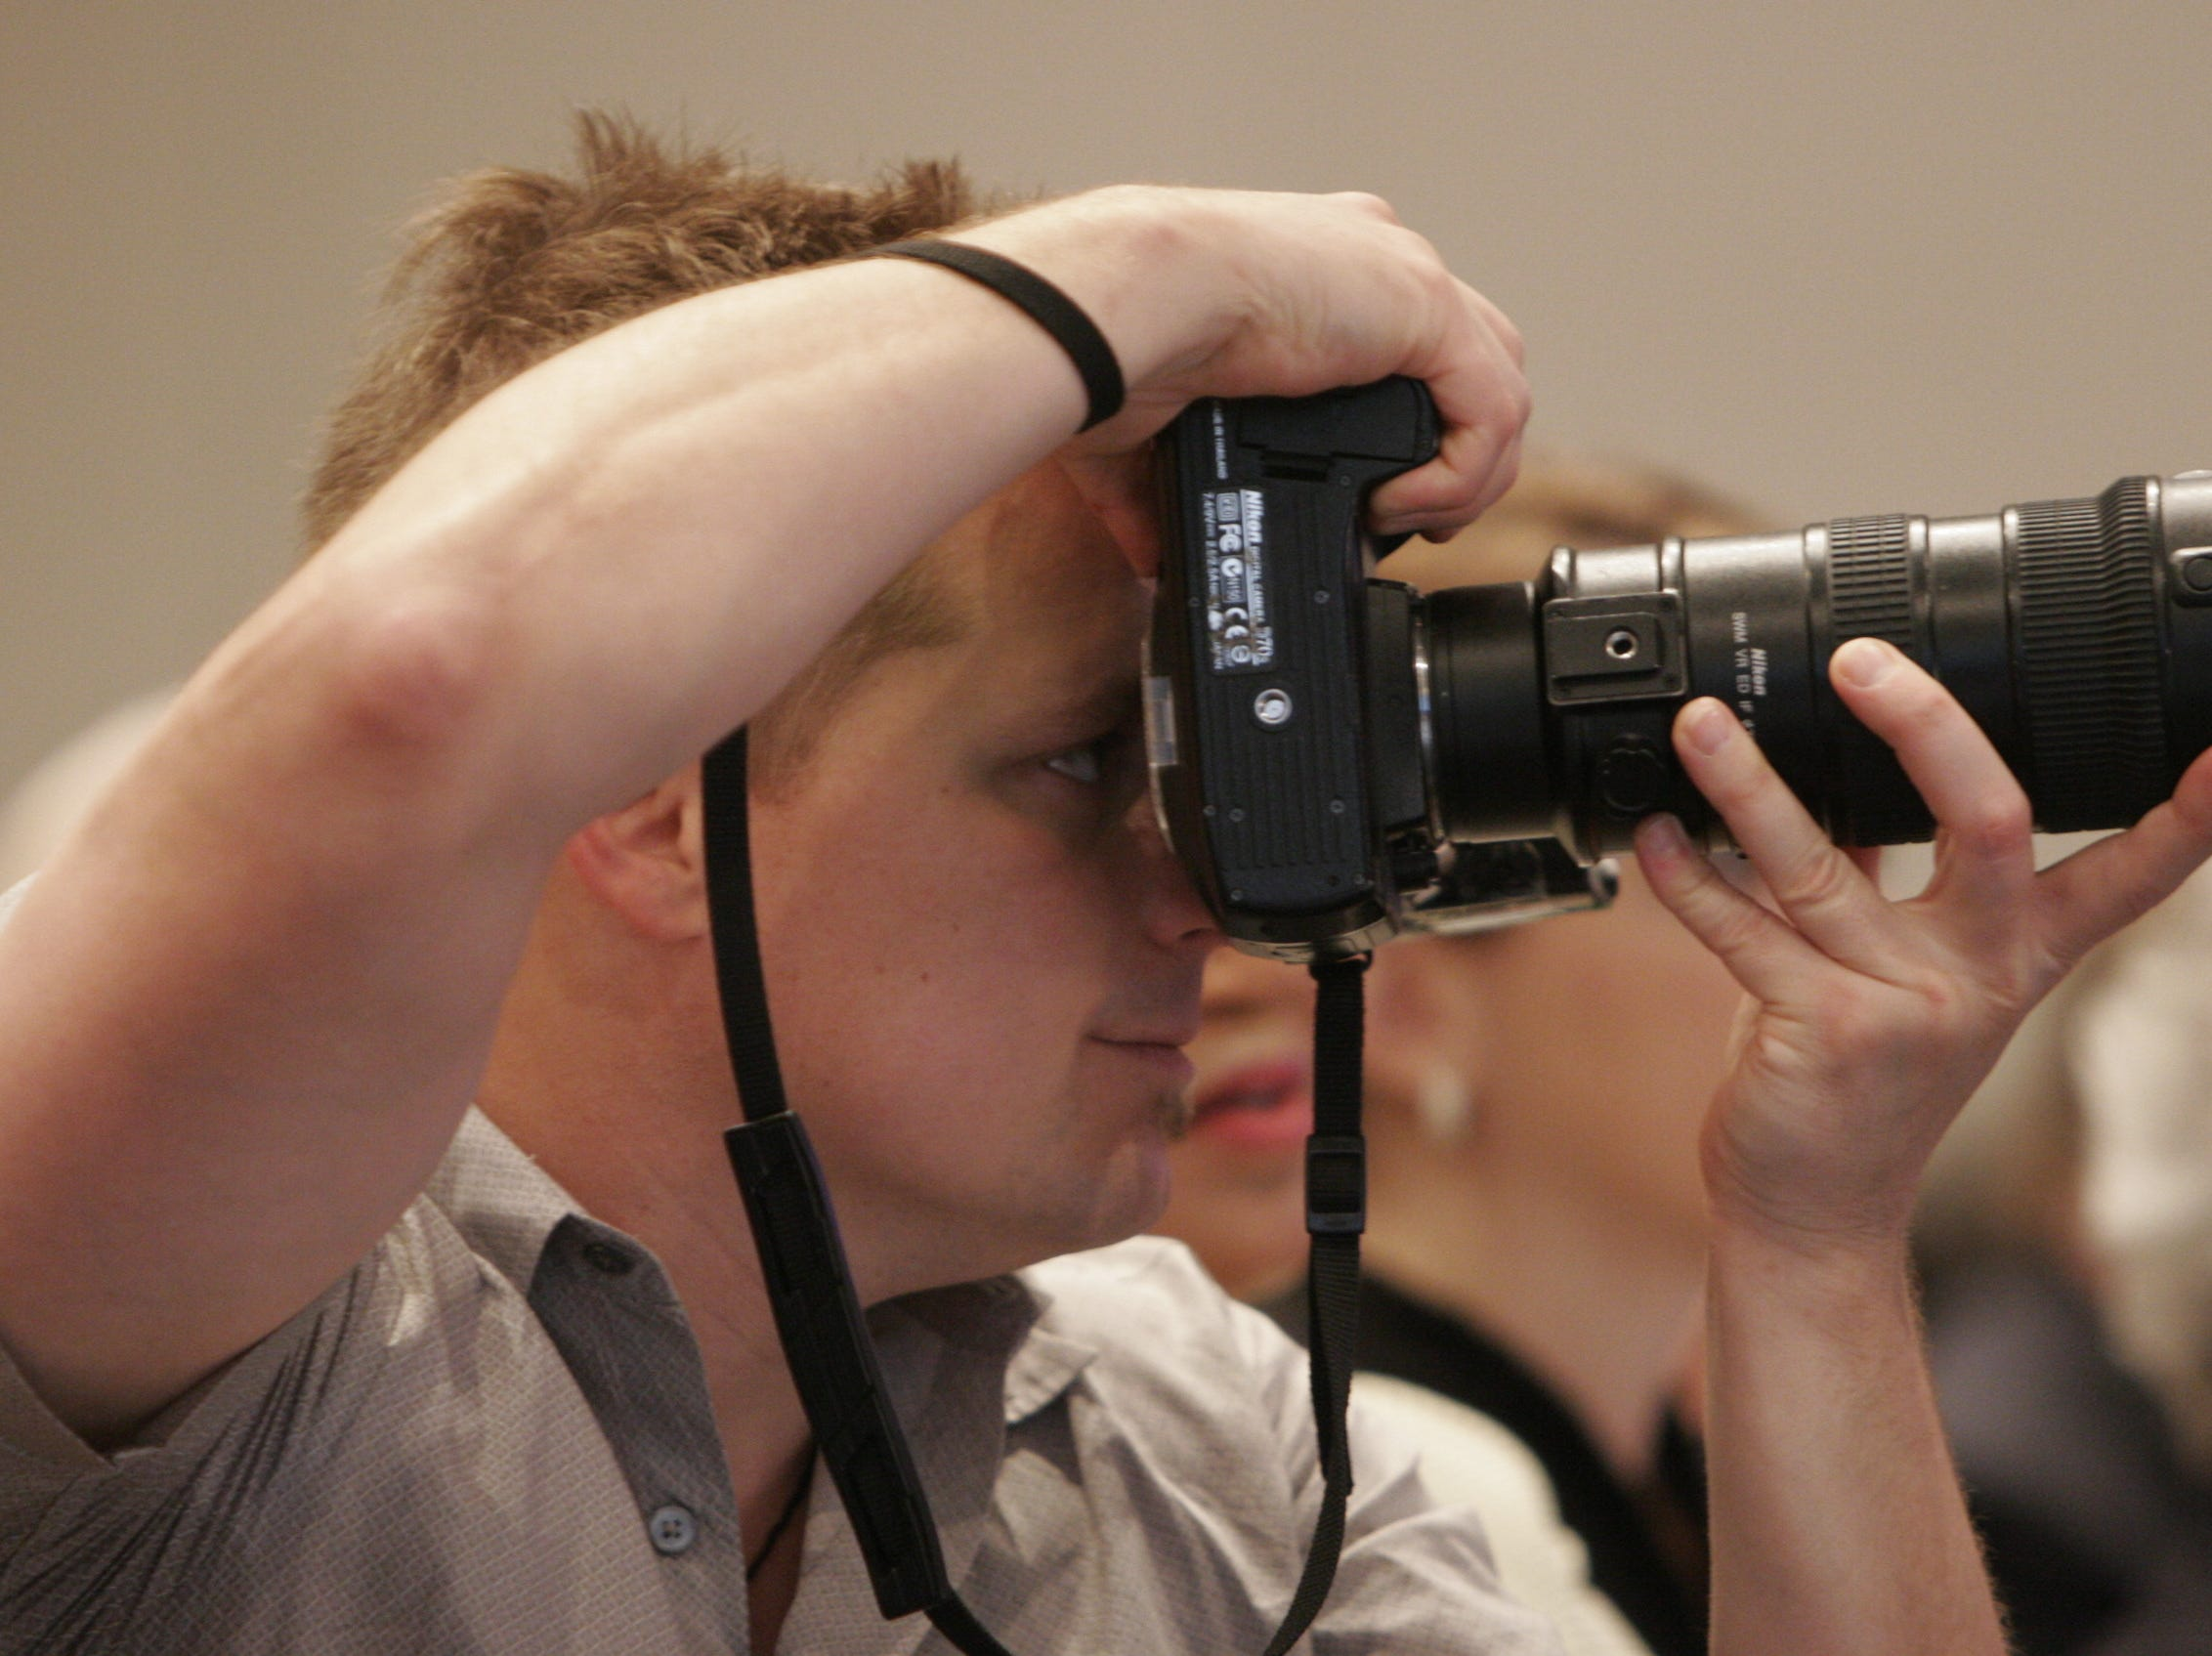 News Sentinel photographer Joe Howell photographs a swearing-in ceremony for new Tennessee Valley Authority Board members Friday, March 31, 2006, at the Knoxville Convention Center.